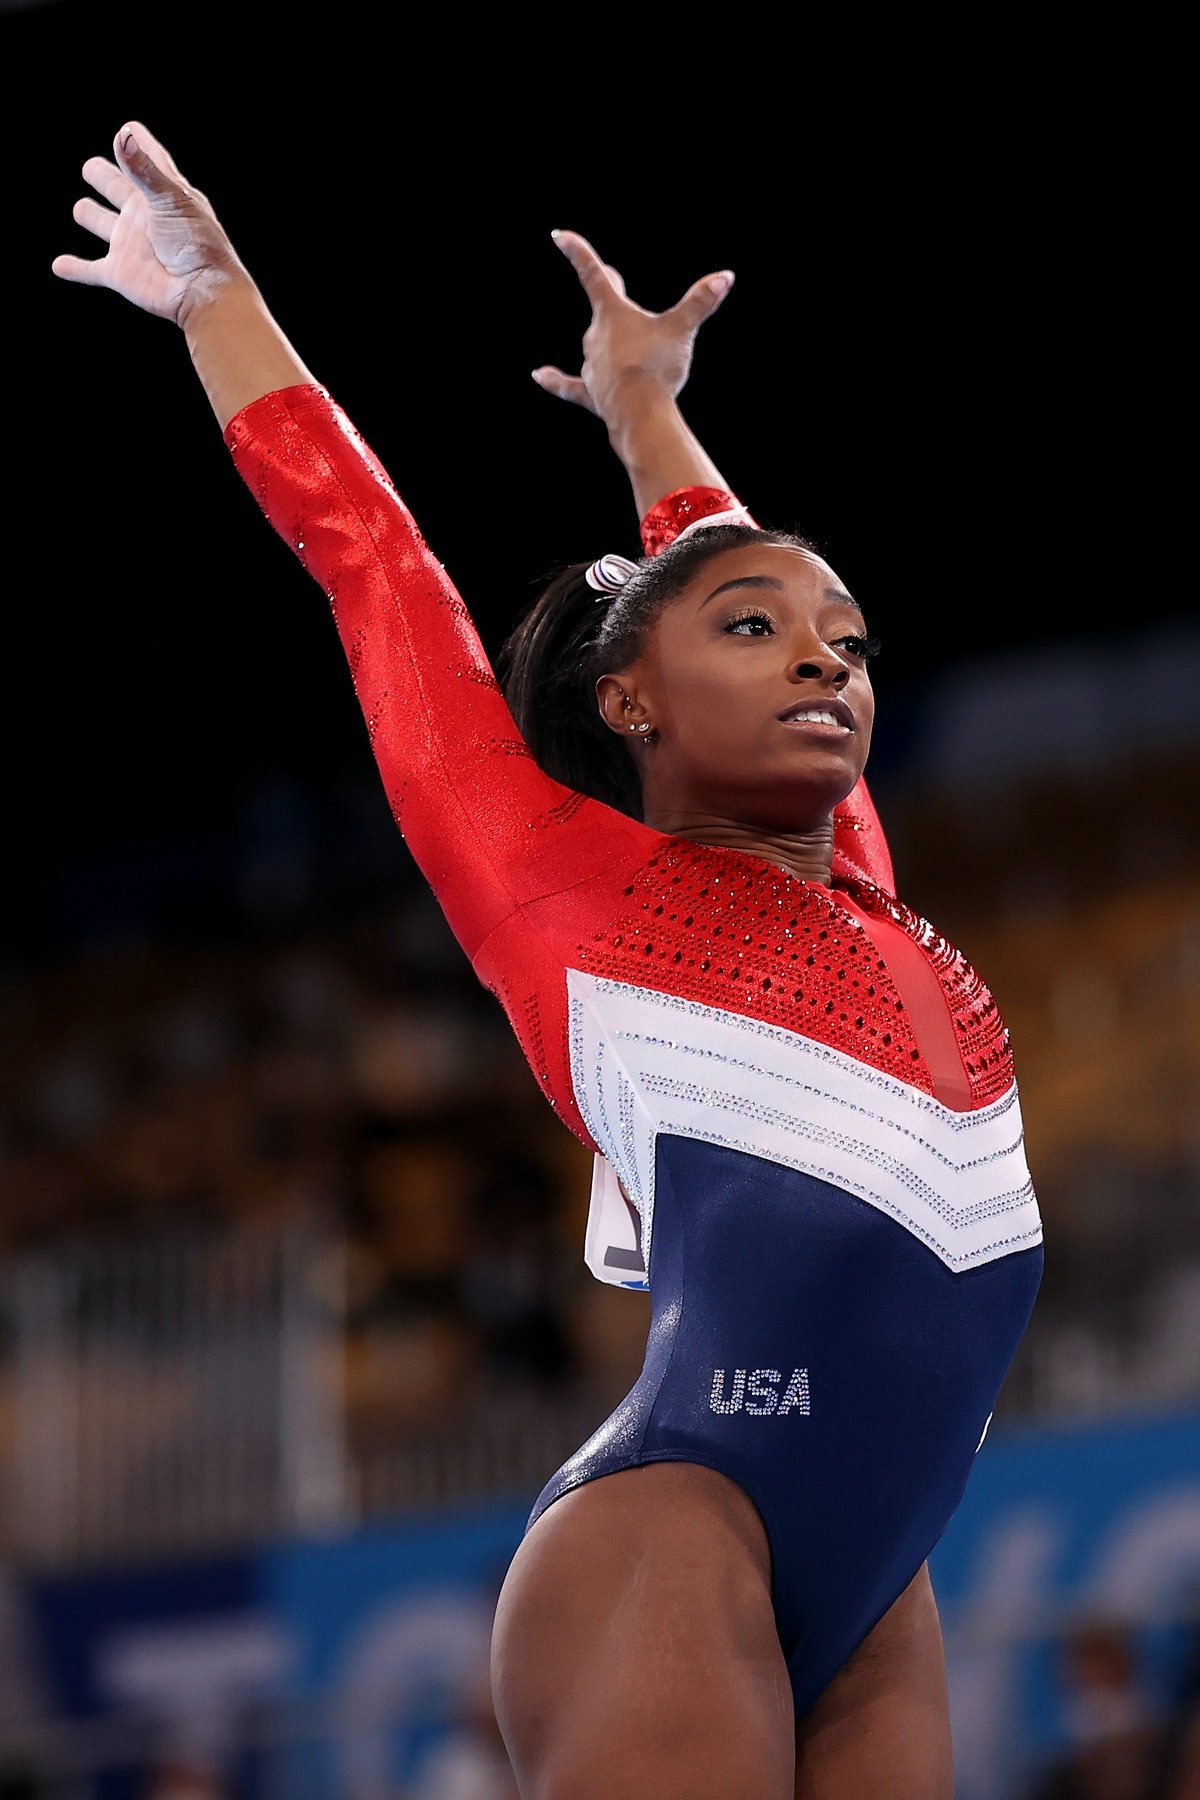 TOKYO, JAPAN - JULY 27: Simone Biles of Team United States competes in vault during the Women's Team Final on day four of the Tokyo 2020 Olympic Games at Ariake Gymnastics Centre on July 27, 2021 in Tokyo, Japan. (Photo by Laurence Griffiths/Getty Images)